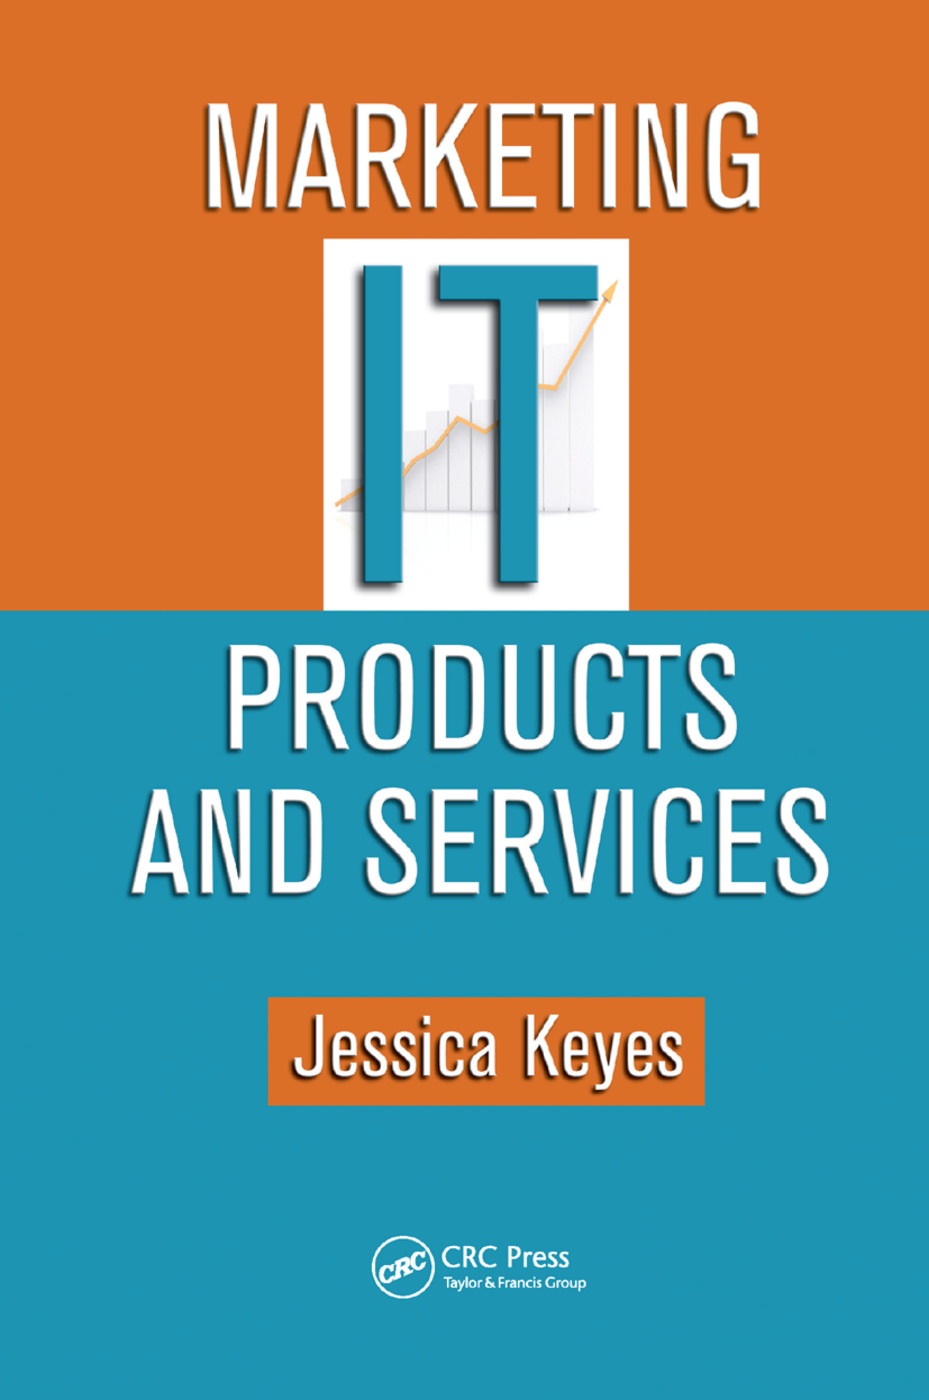 Marketing IT Products and Services book cover